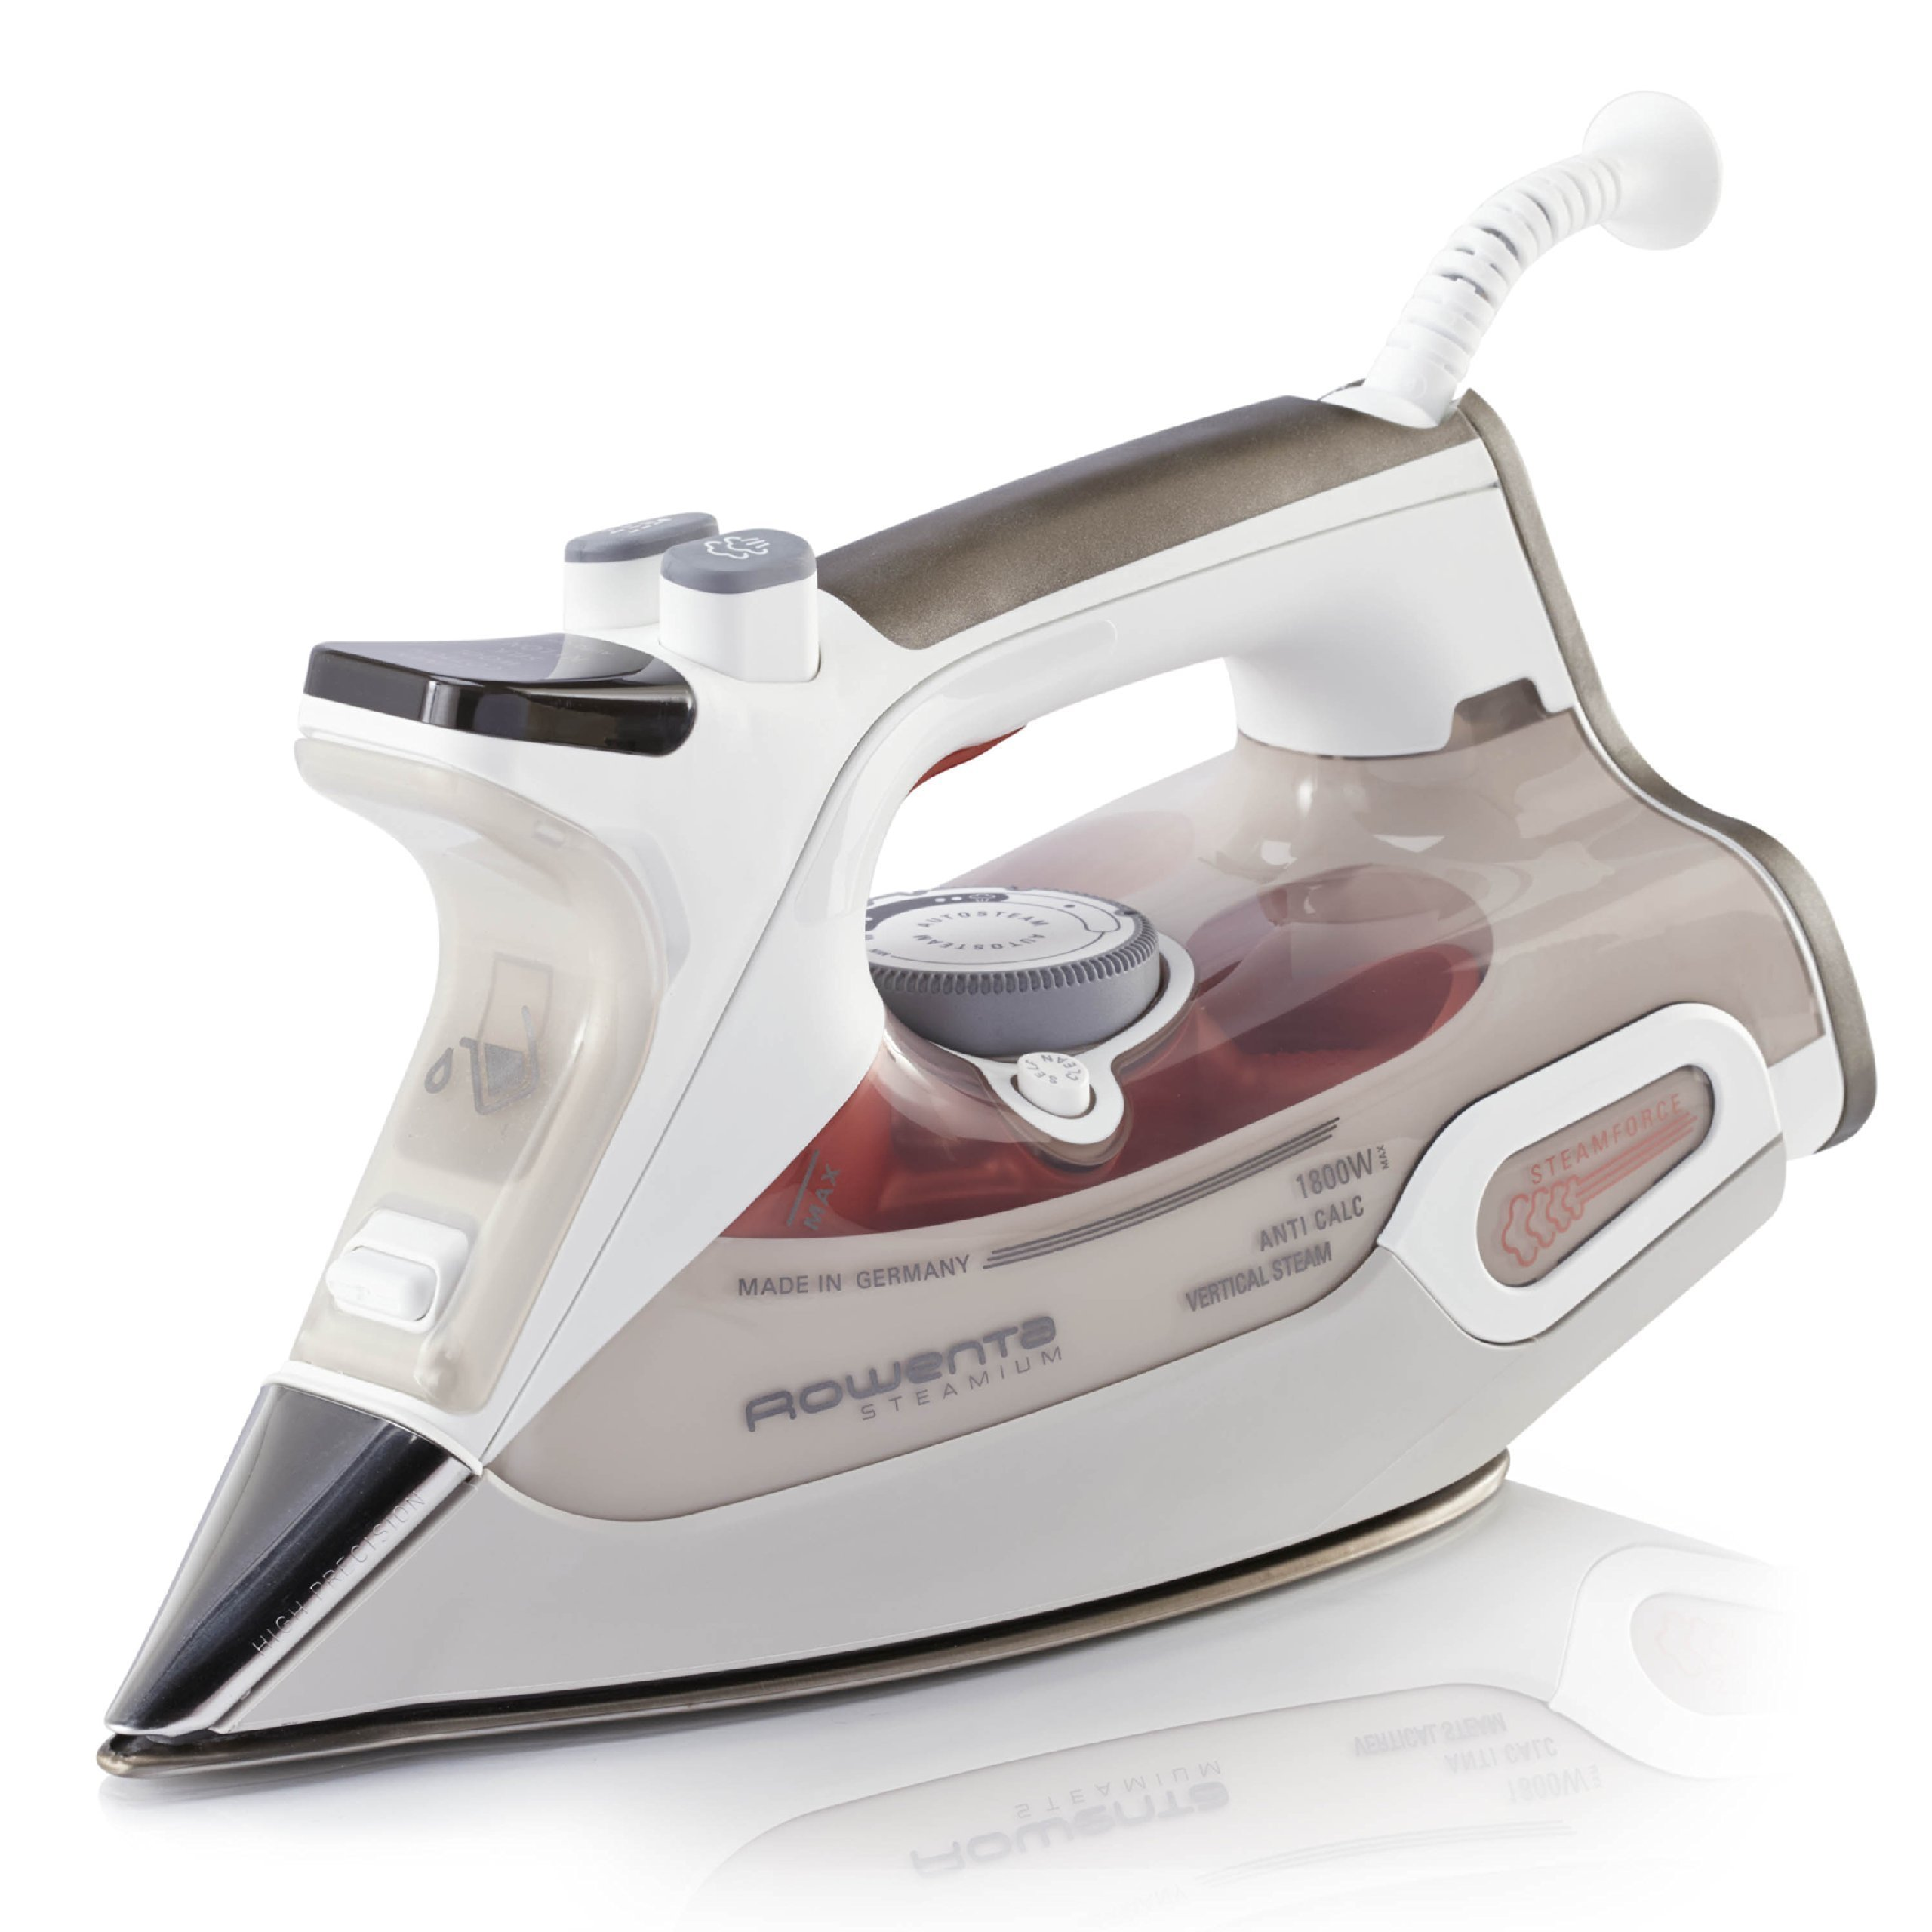 Rowenta DW9081 Steamium 1800-Watt Professional Steam Iron with LCD screen Stainless Steel Soleplate with Auto-Off, 400-Hole, Brown